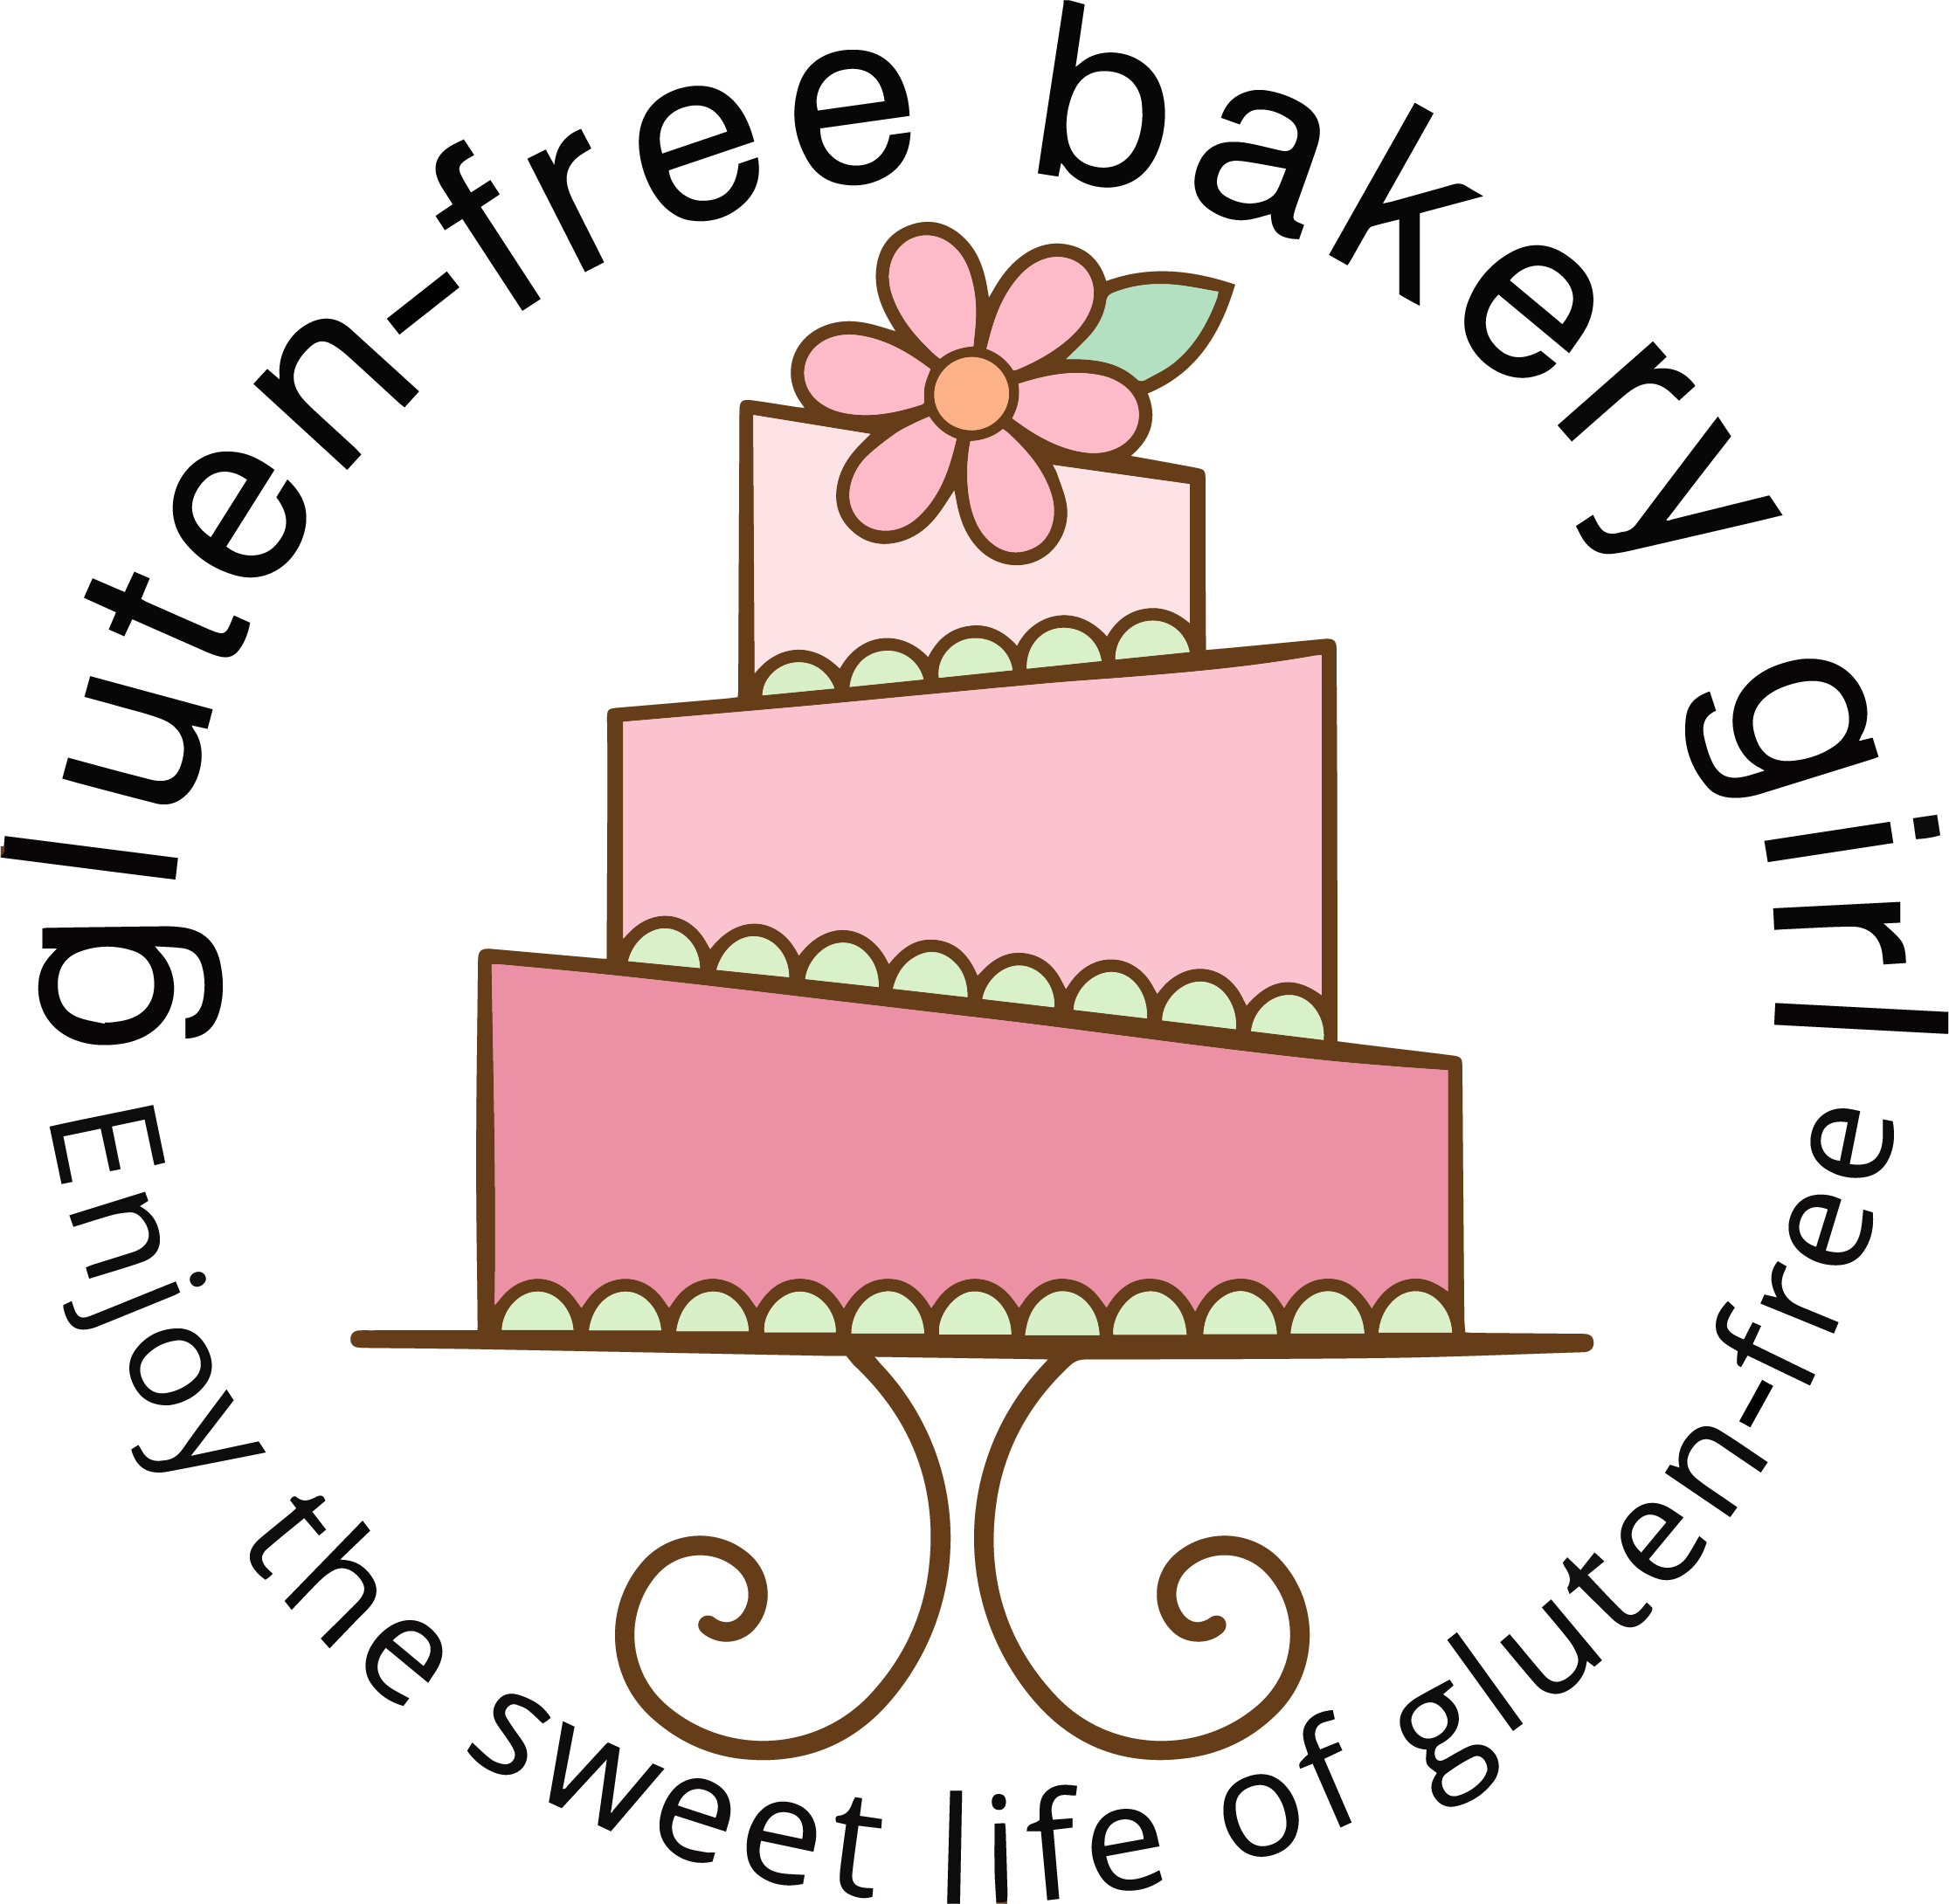 gfbg-logo-with-sweet-tagline-black-text.png